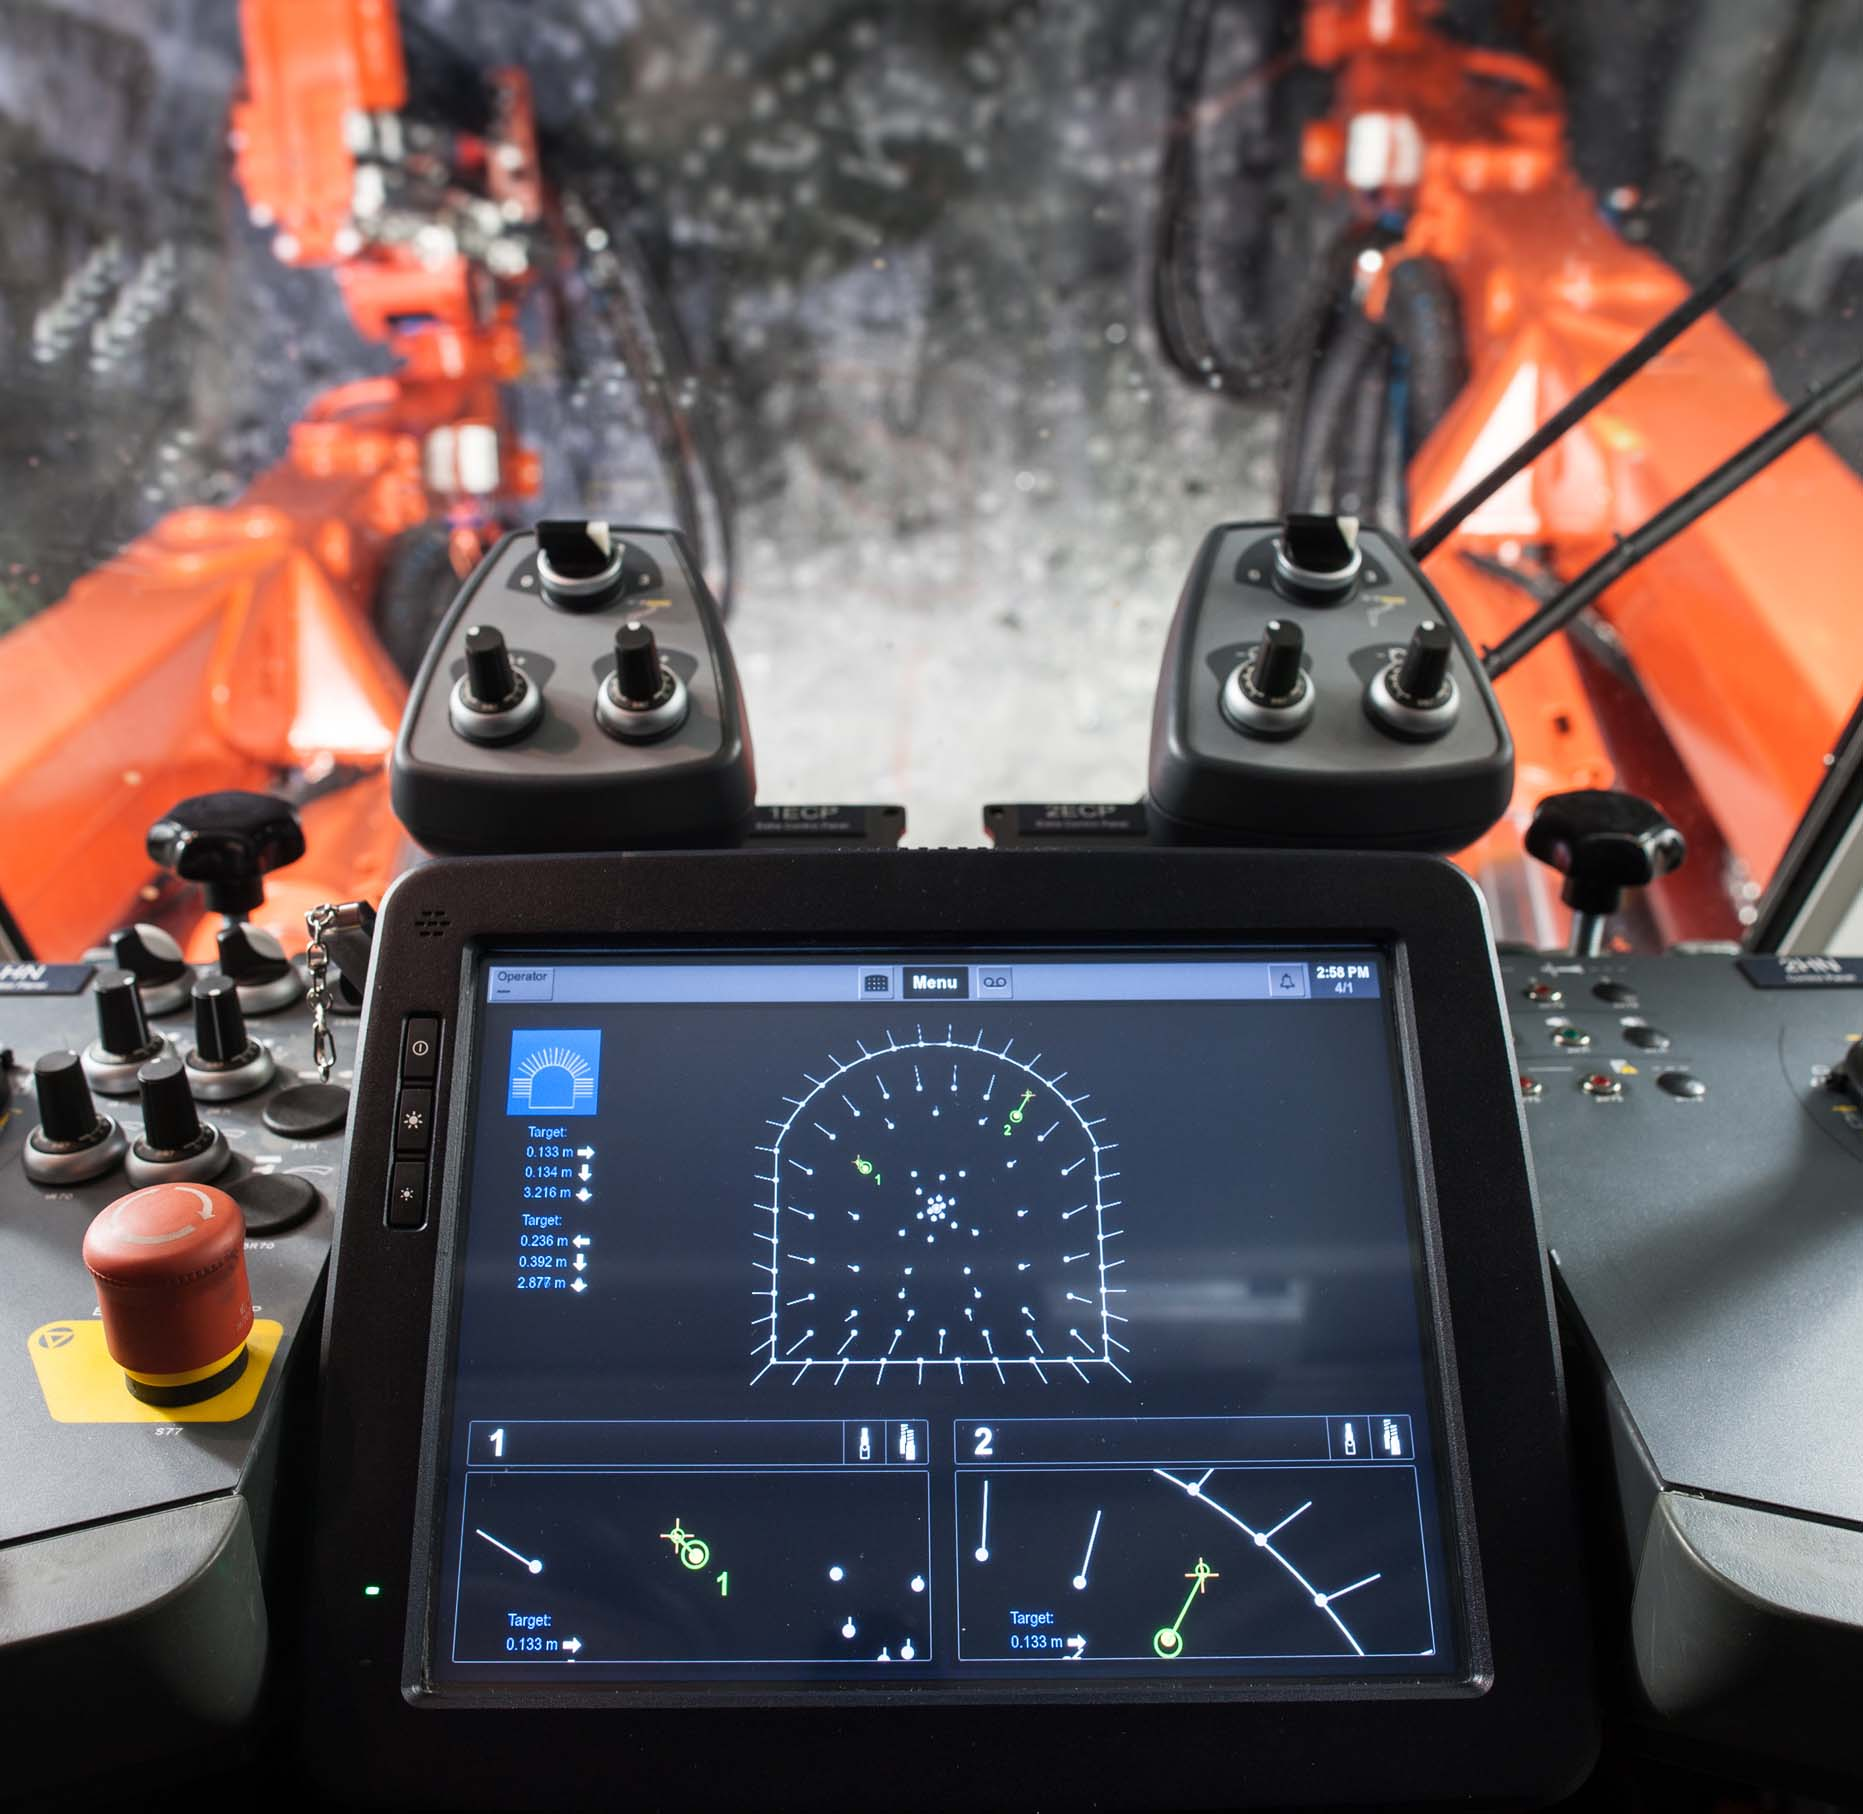 Tcad System Provides Advancing Drilling Accuracy And Blast Economy Sandvik Mining And Rock Technology